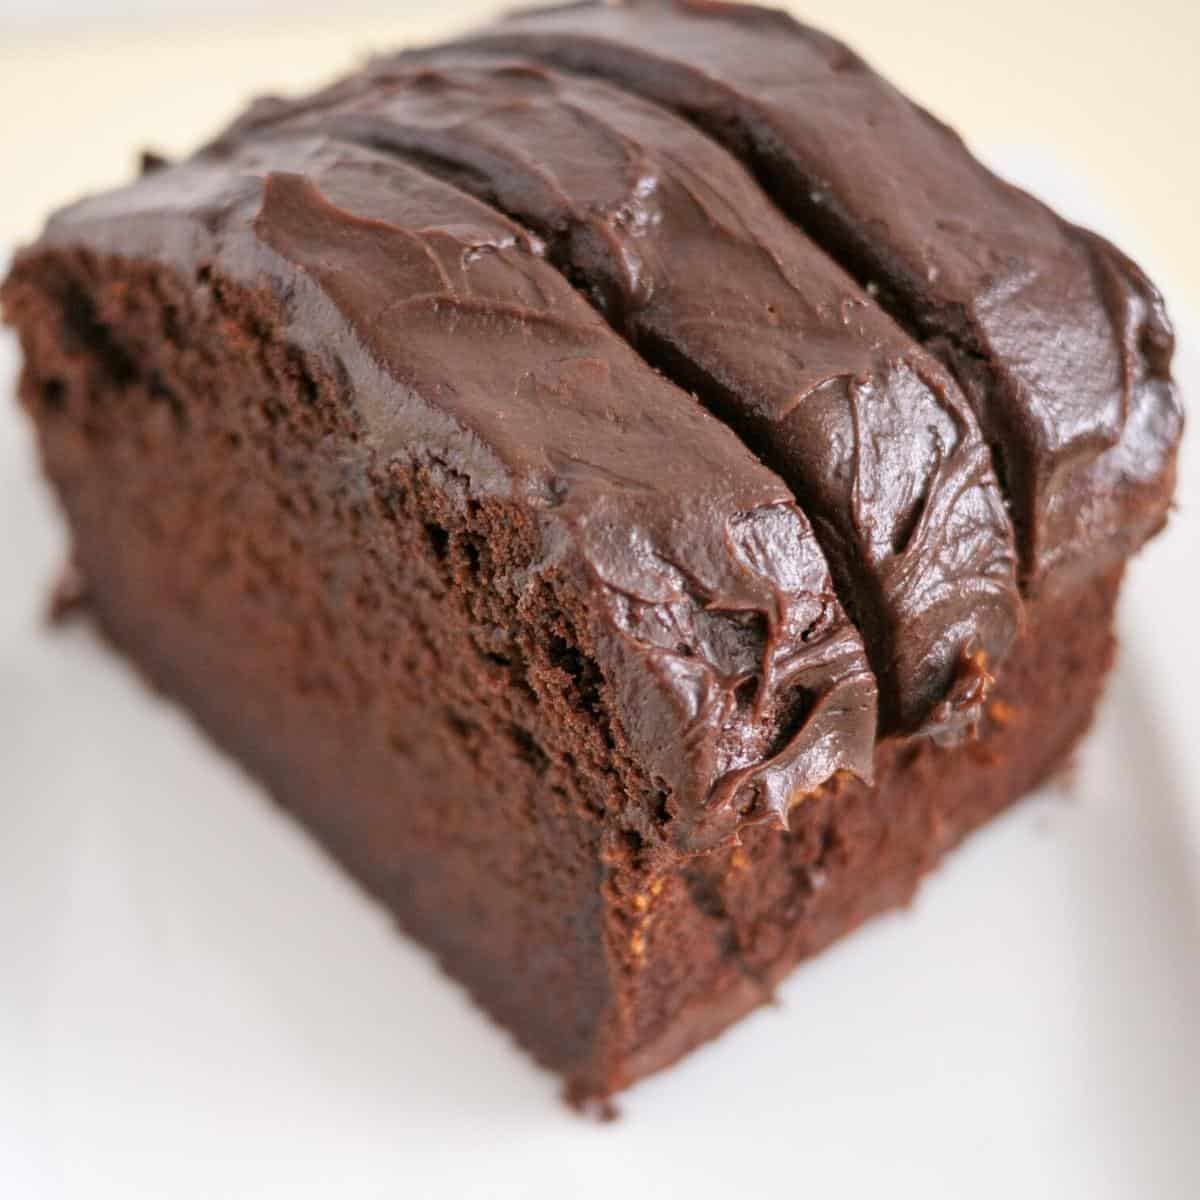 Slices of pound cake frosted with chocolate frosting